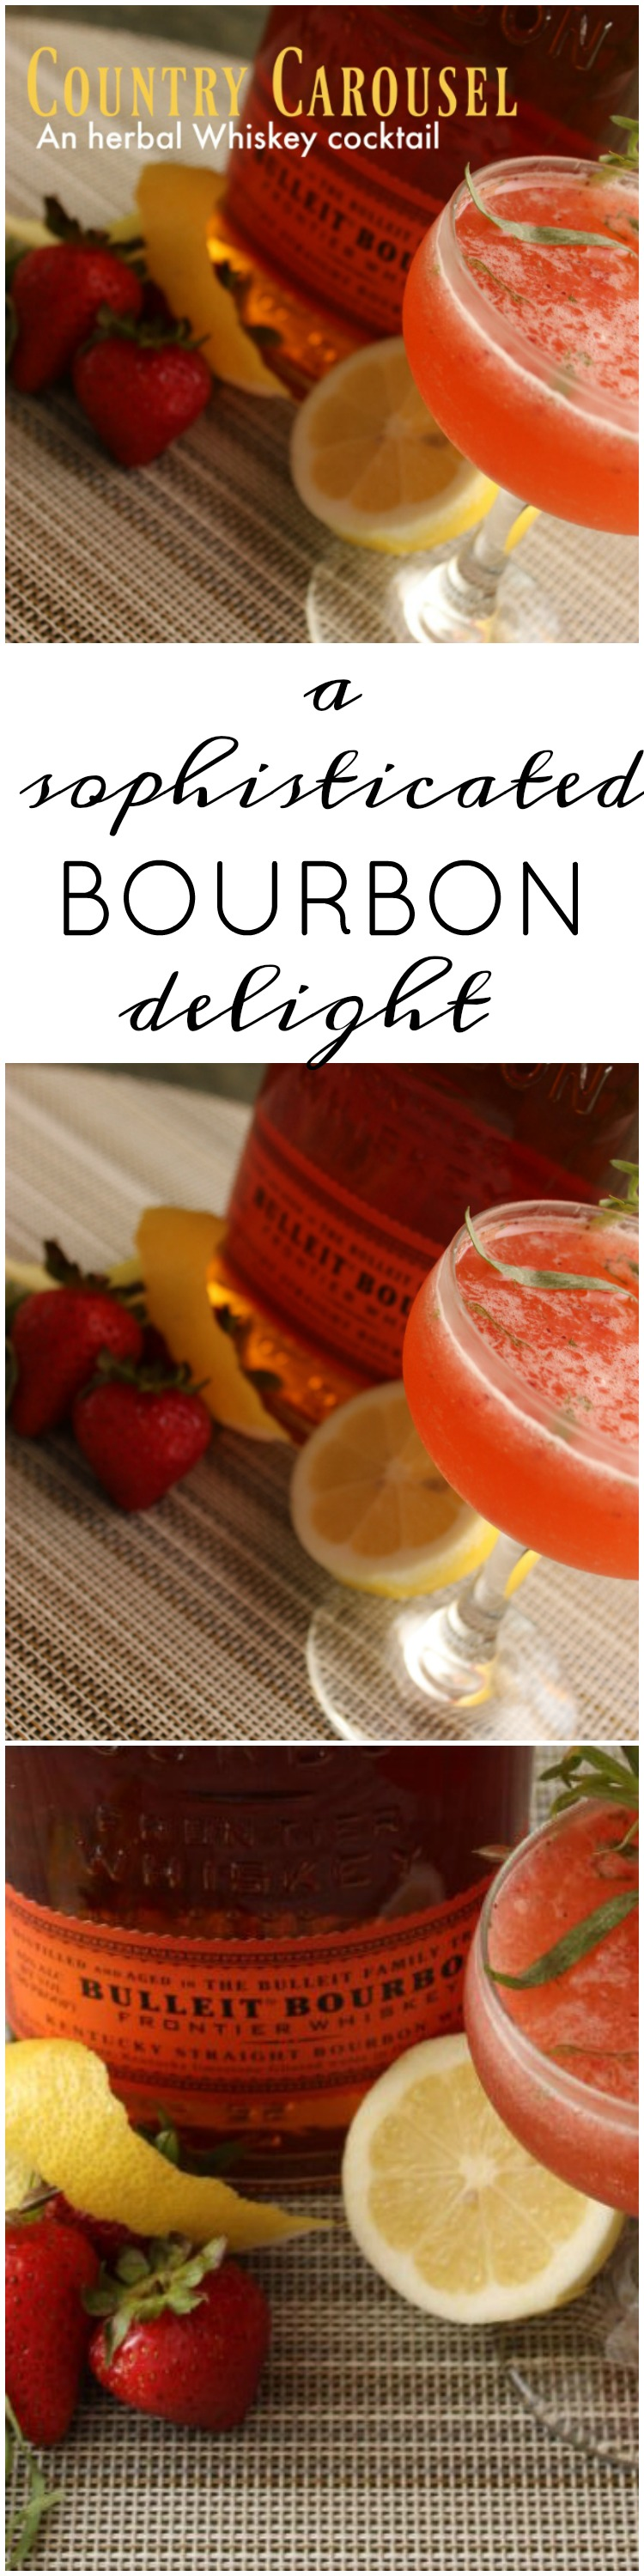 Bourbon Cocktail recipe strawberry